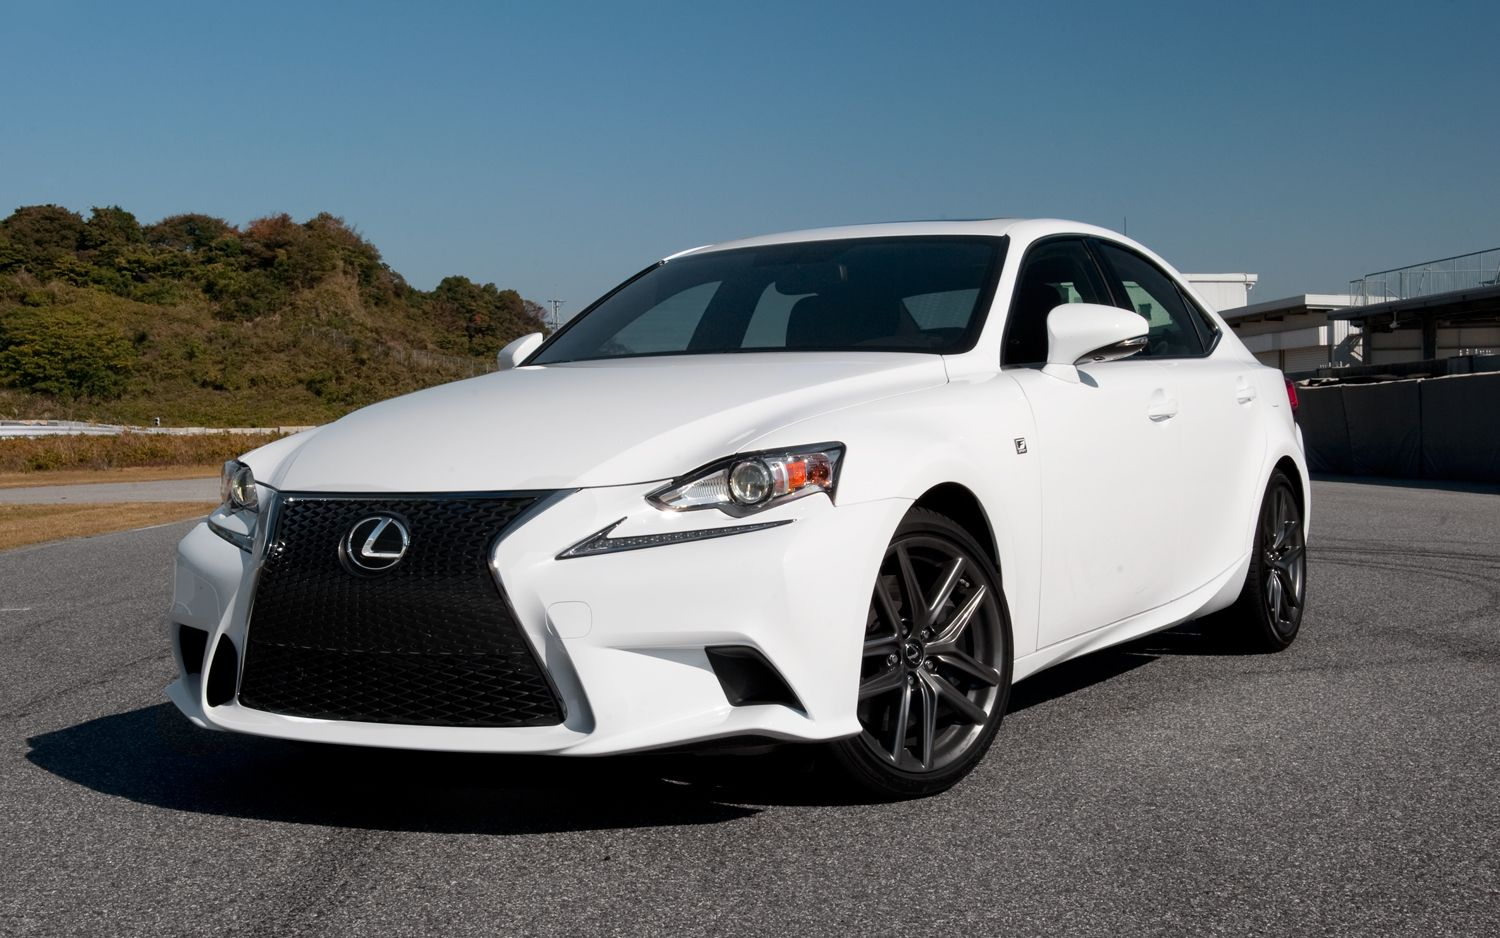 2014 Lexus IS 350 F Sport First Drive Dream cars lexus